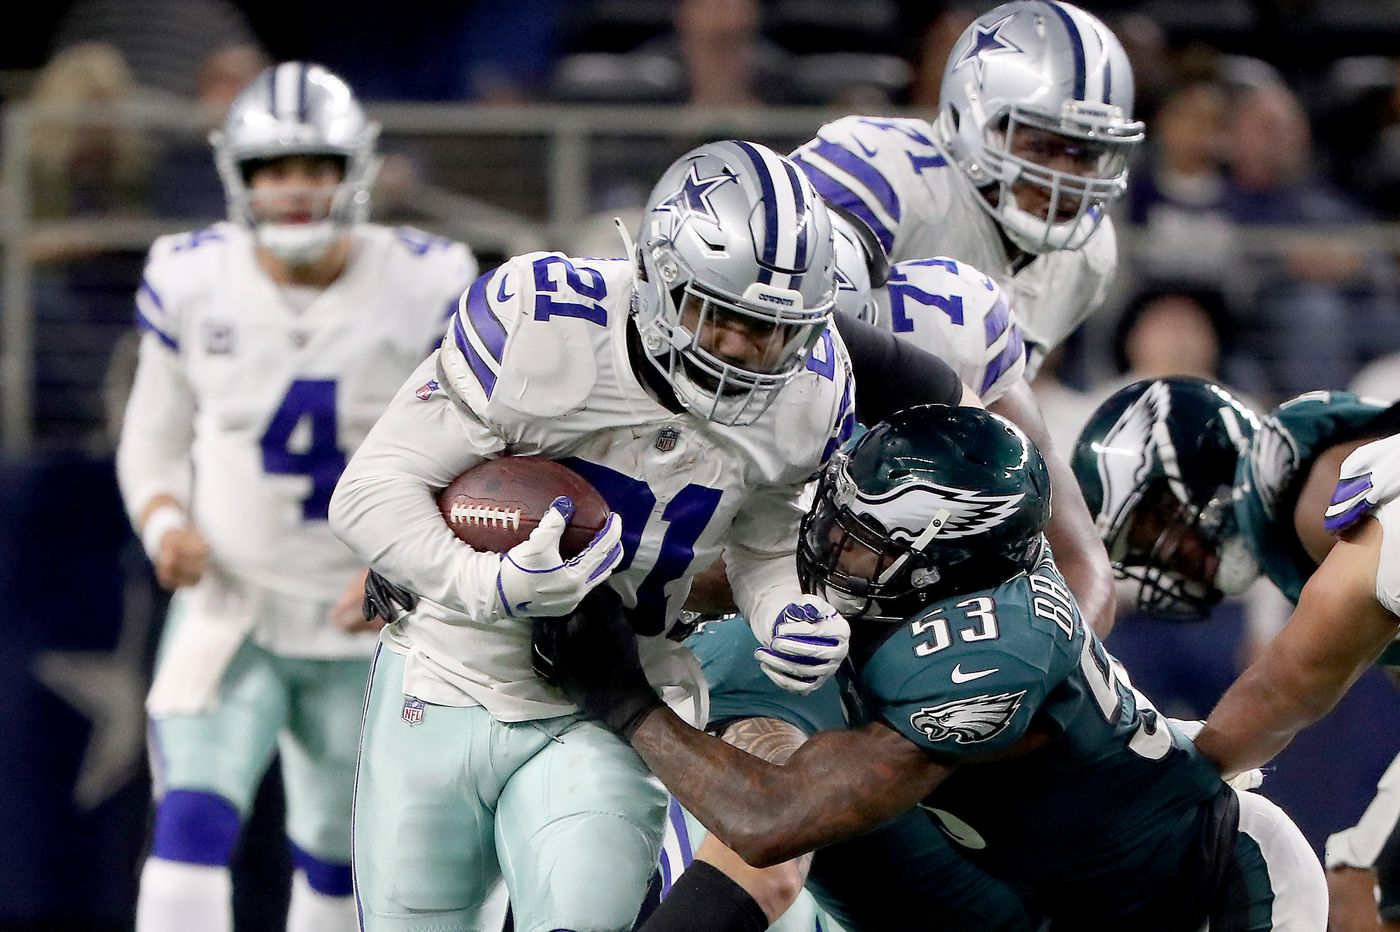 Grading the Eagles: Run game, pass defense earn 'D' grades in loss to Cowboys | Paul Domowitch